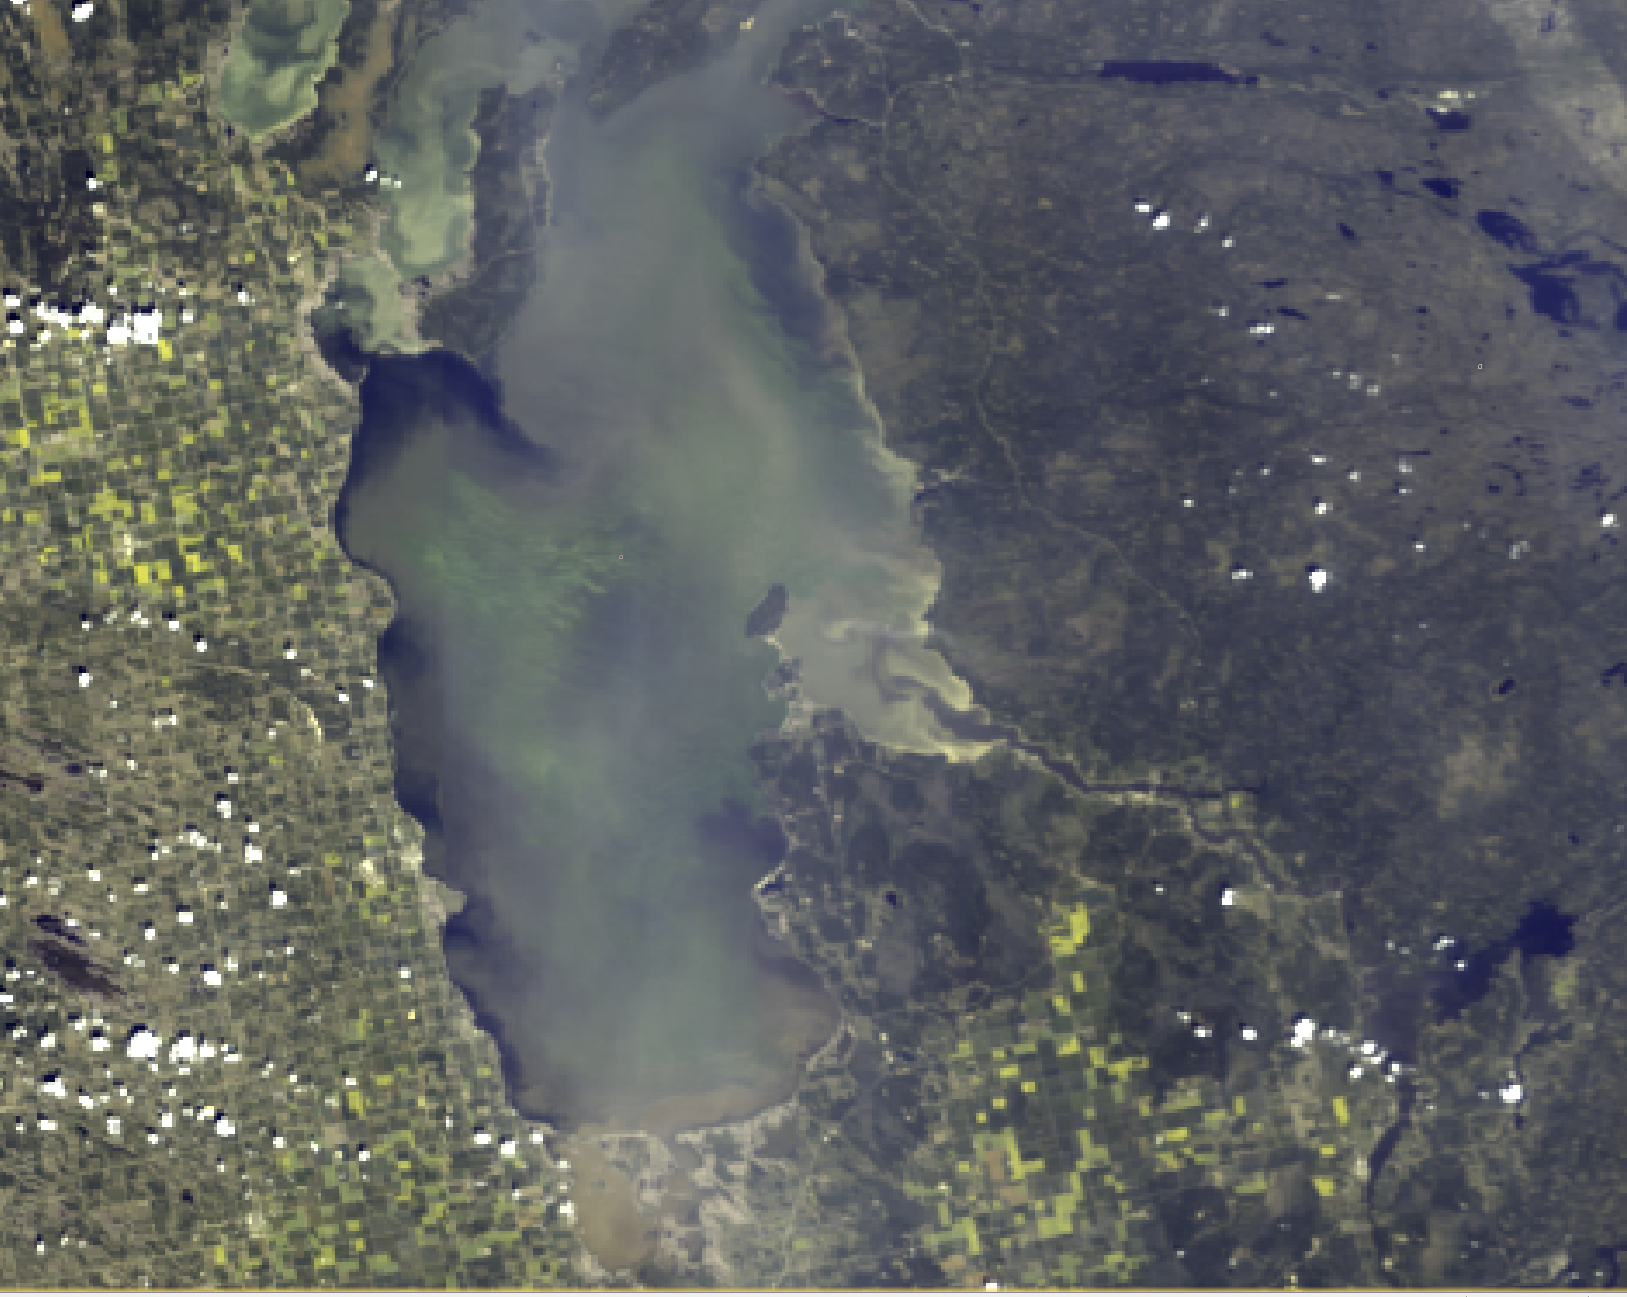 """July 23, 2019 - We've been a bit unlucky with cloud cover lately when the high resolution satellite passed over the lake. Instead, here is a lower resolution image (300 m) taken from a different satellite that shows the large extent of algal blooms in the south basin this week. This image shows extensive offshore blooms in green. These blooms can be seen near the mouth of the Red River all the way to Manigotogan River/Black Island area. The offshore booms extend onto to the east beaches shoreline in many areas including Grand Beach, Hillside Beach, and Victoria Beach due to westerly winds. Lester Beach, just north of Grand Beach had better conditions, shown here as darker water which has less algae and sediment. The west side has favorable conditions for recreation due to an up-welling event shown as darker water all along this shore. During up-welling, the offshore winds push the surface water away and a return current flows along the bottom of the lake (where floating algae are not found) and seeps up onto the west shore. The muddy brown plume from the Red River is visible near the mouth and in the Patricia Beach area. The """"tea-stained"""" water from the Winnipeg River plume can also be seen entering Traverse Bay. The bright areas in the bay show where high concentrations of sediment were re-suspended from the shallows by waves. Sediment at the surface of the water reflects sunlight back to the satellite strongly."""